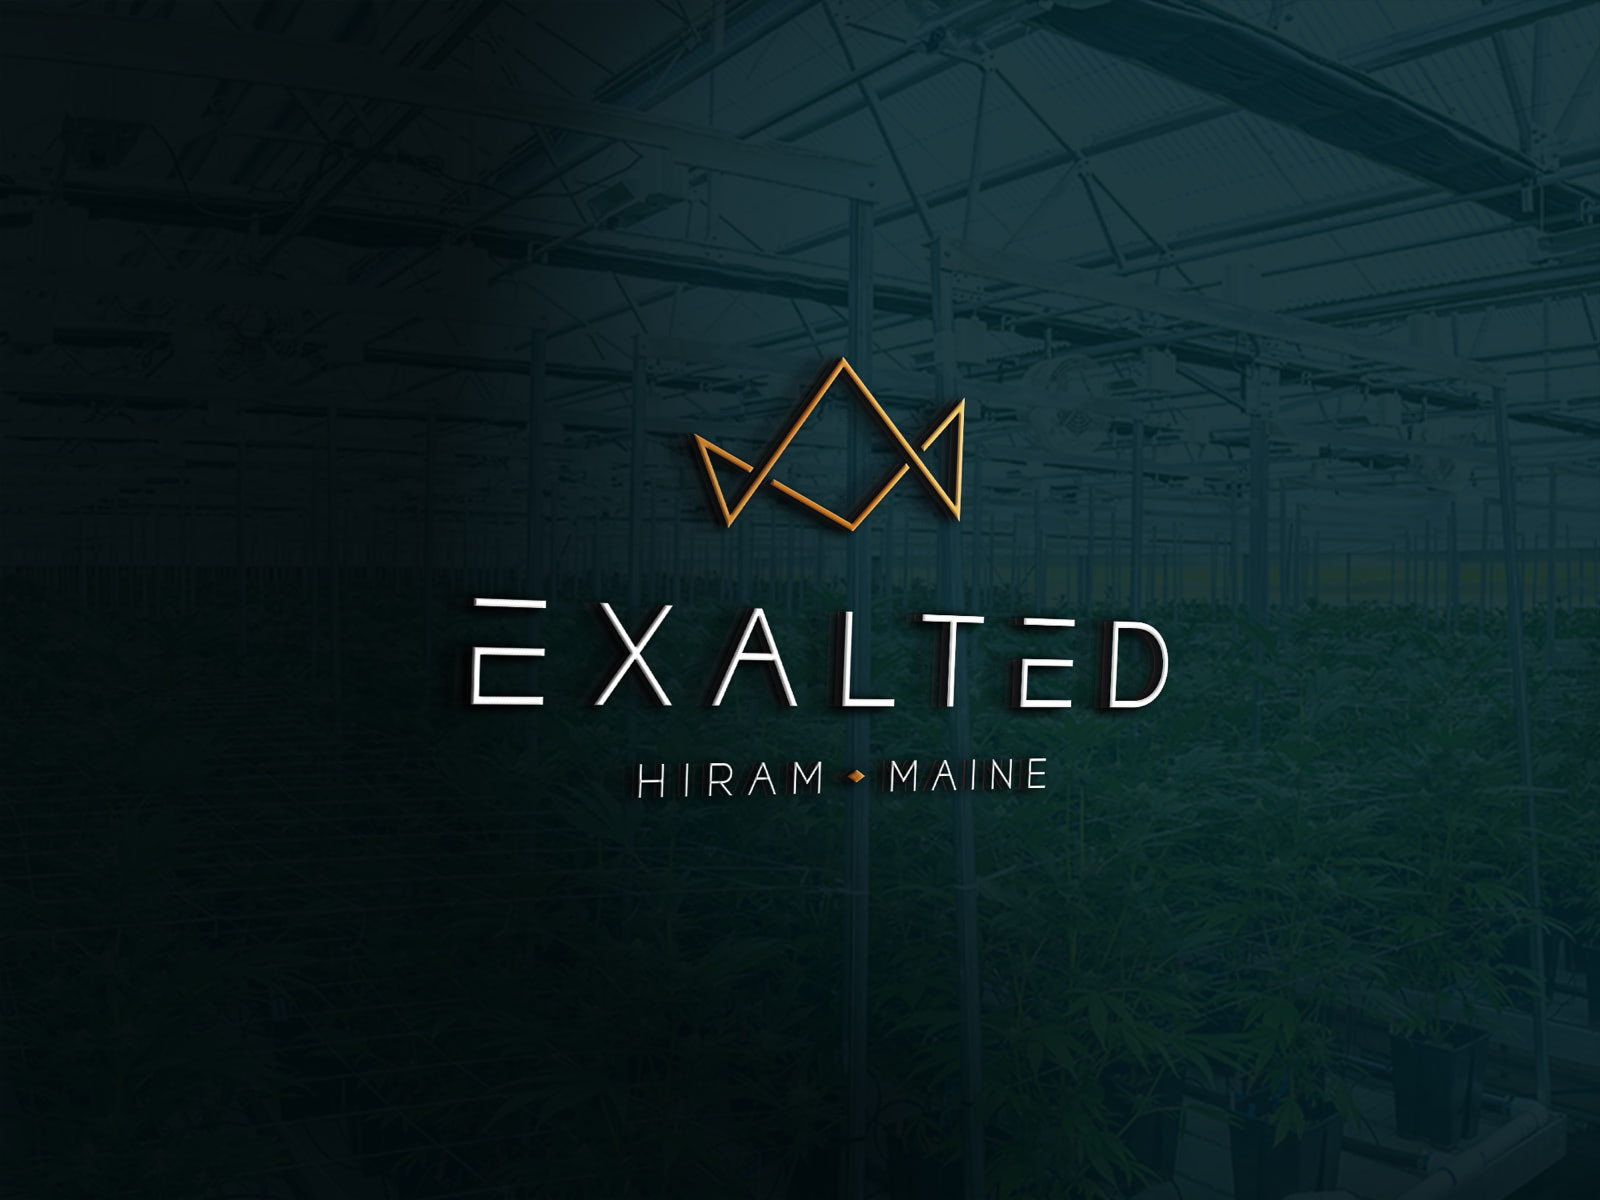 Mockup of the Exalted logo on a window with a cannabis growing facility in the background